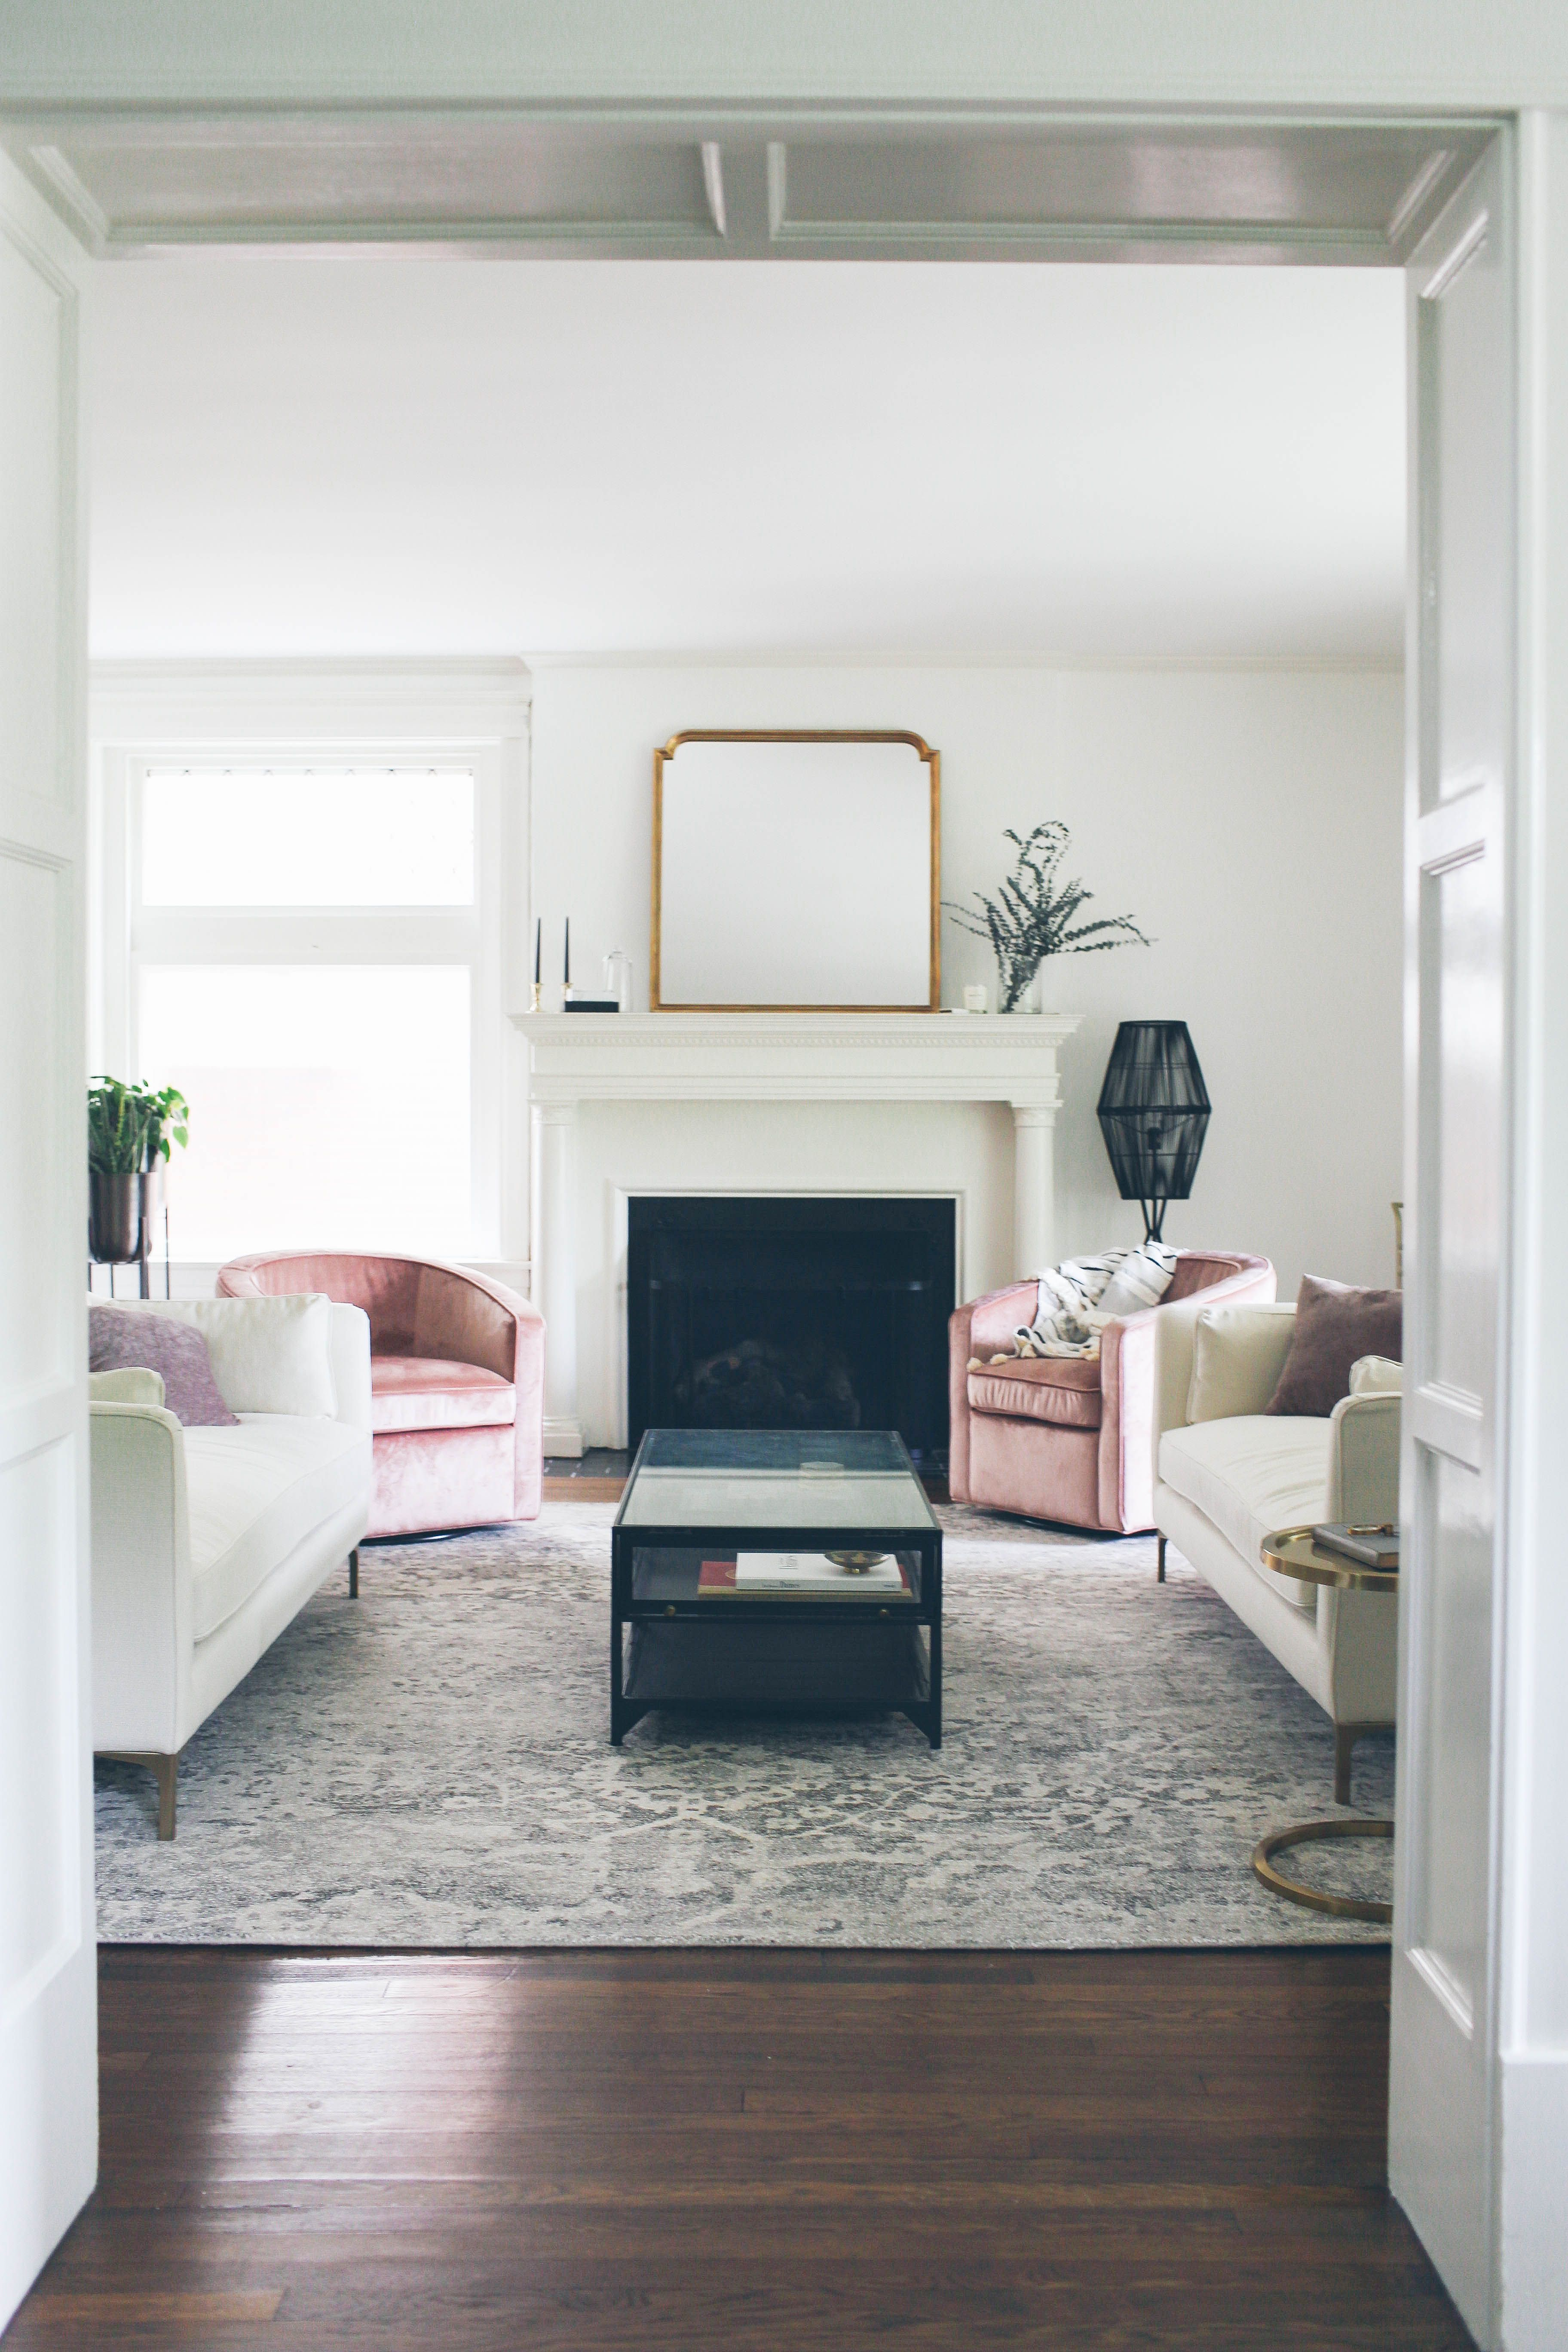 Our Formal Living Room Entryway Lows To Luxe Living Room And Kitchen Design Formal Living Rooms Small Living Rooms #small #formal #living #room